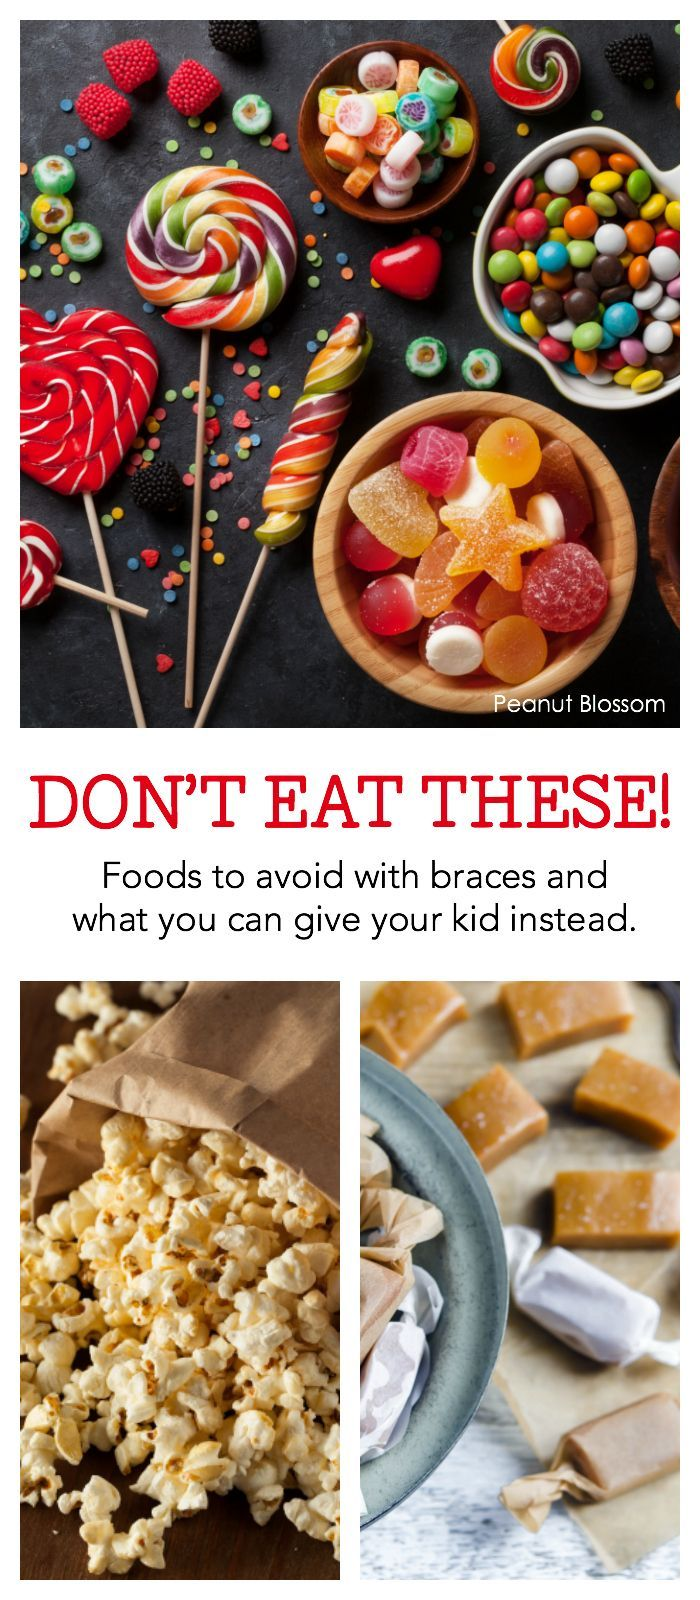 Don't eat these! Foods to avoid with braces and yummy